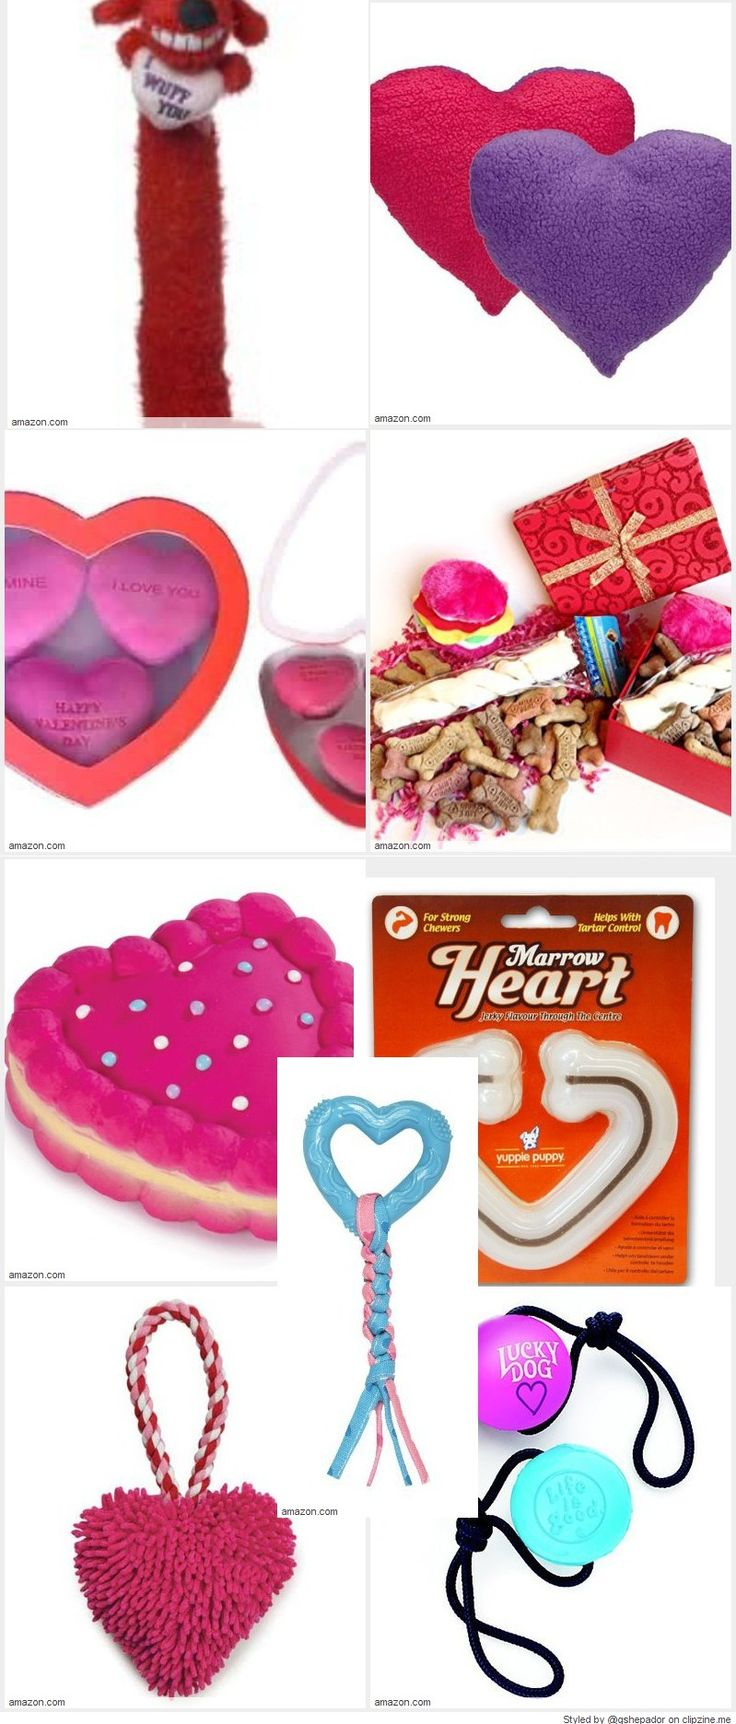 Valentine S Day Dog Toys : Best images about valentines day dog toys on pinterest